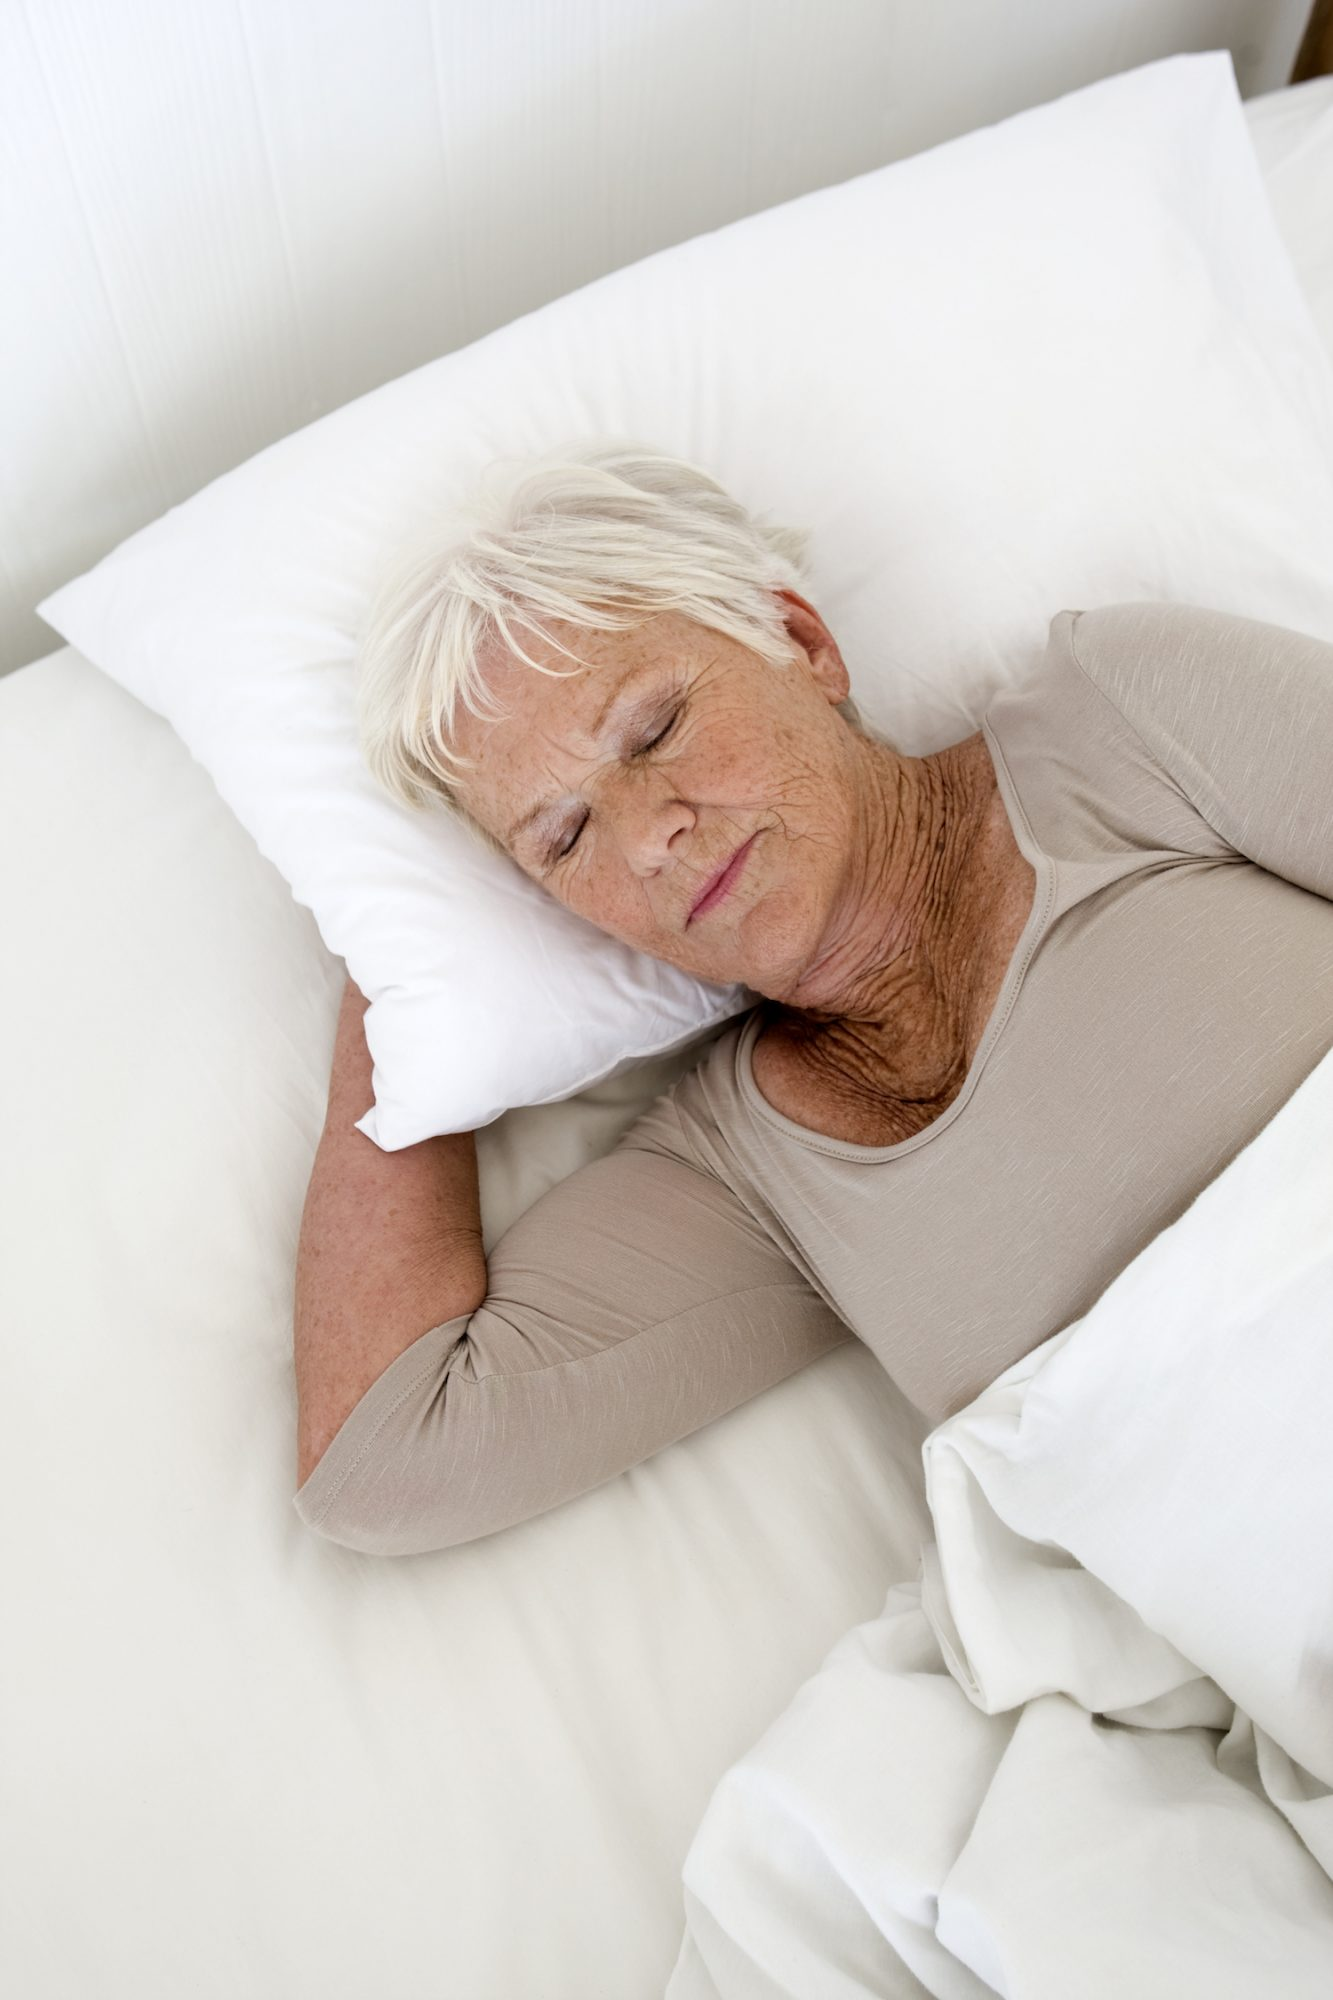 You With Woman How Make Sleep To An Older